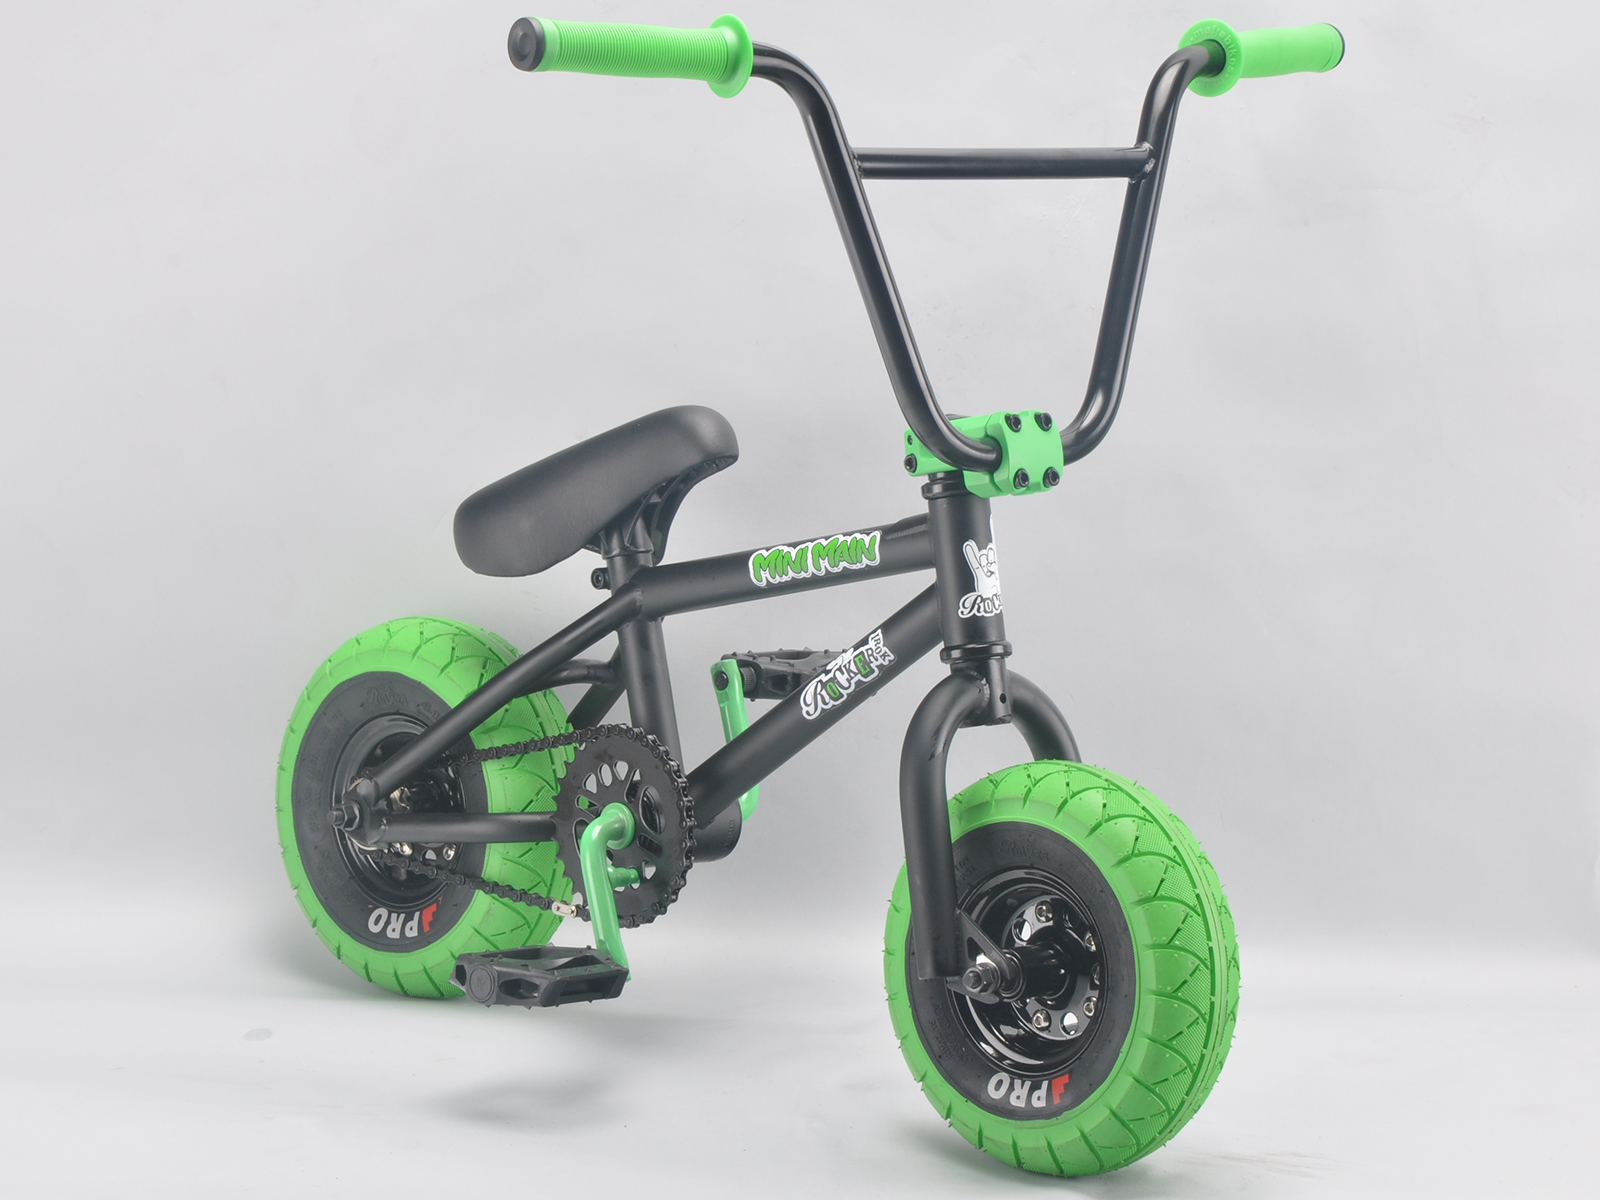 http://rockerbmx.com/images/stories/virtuemart/product/MINIMAINIROK0145%203.jpg